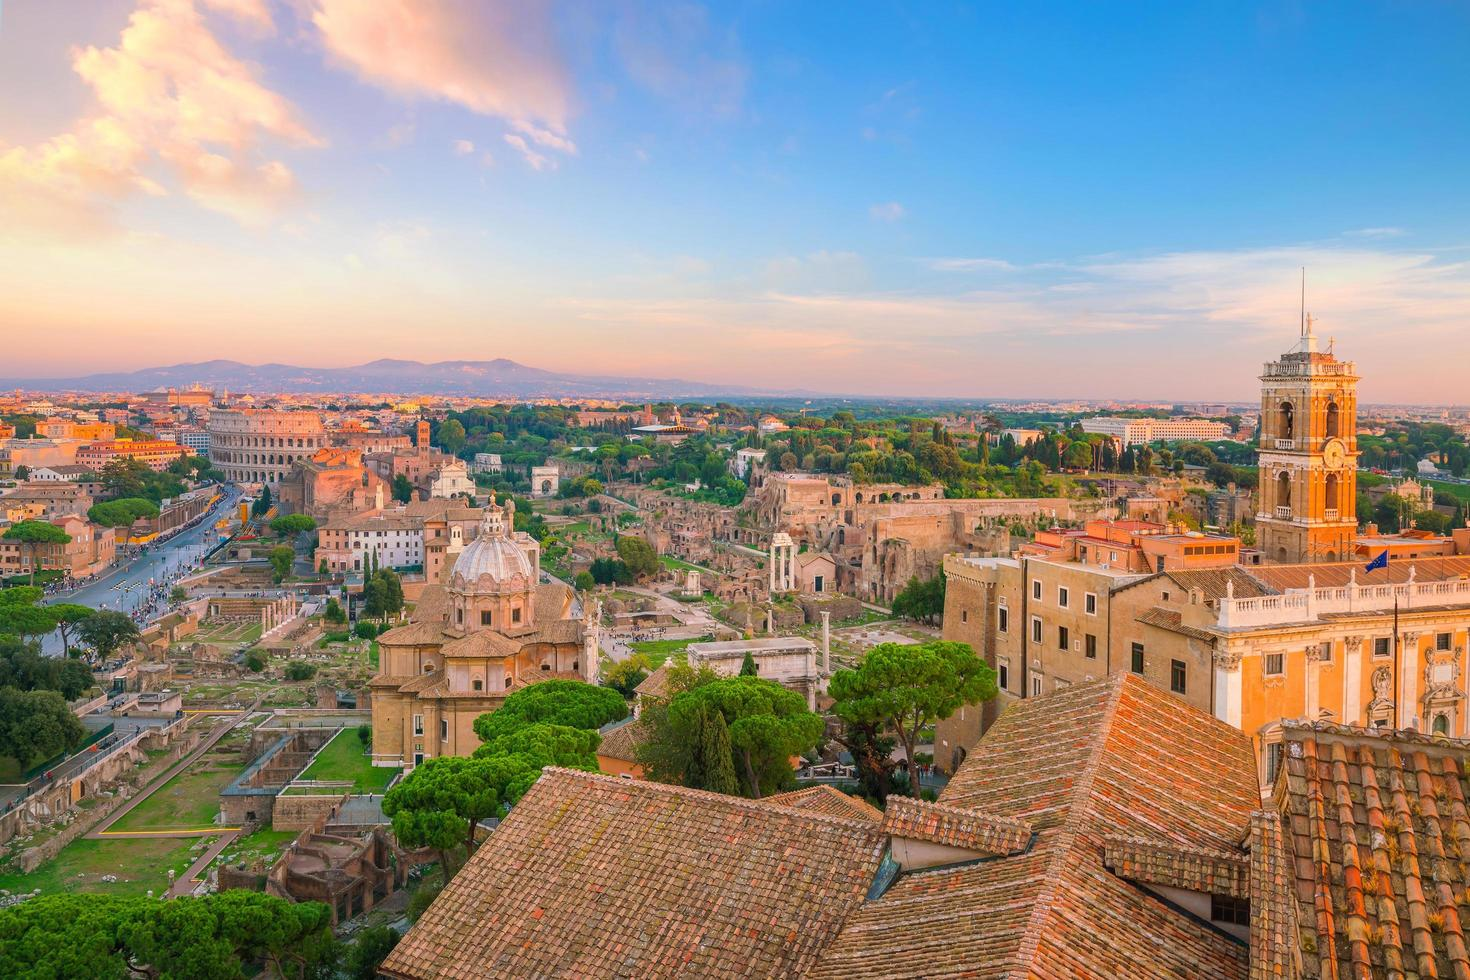 View of Rome city center at sunset. photo